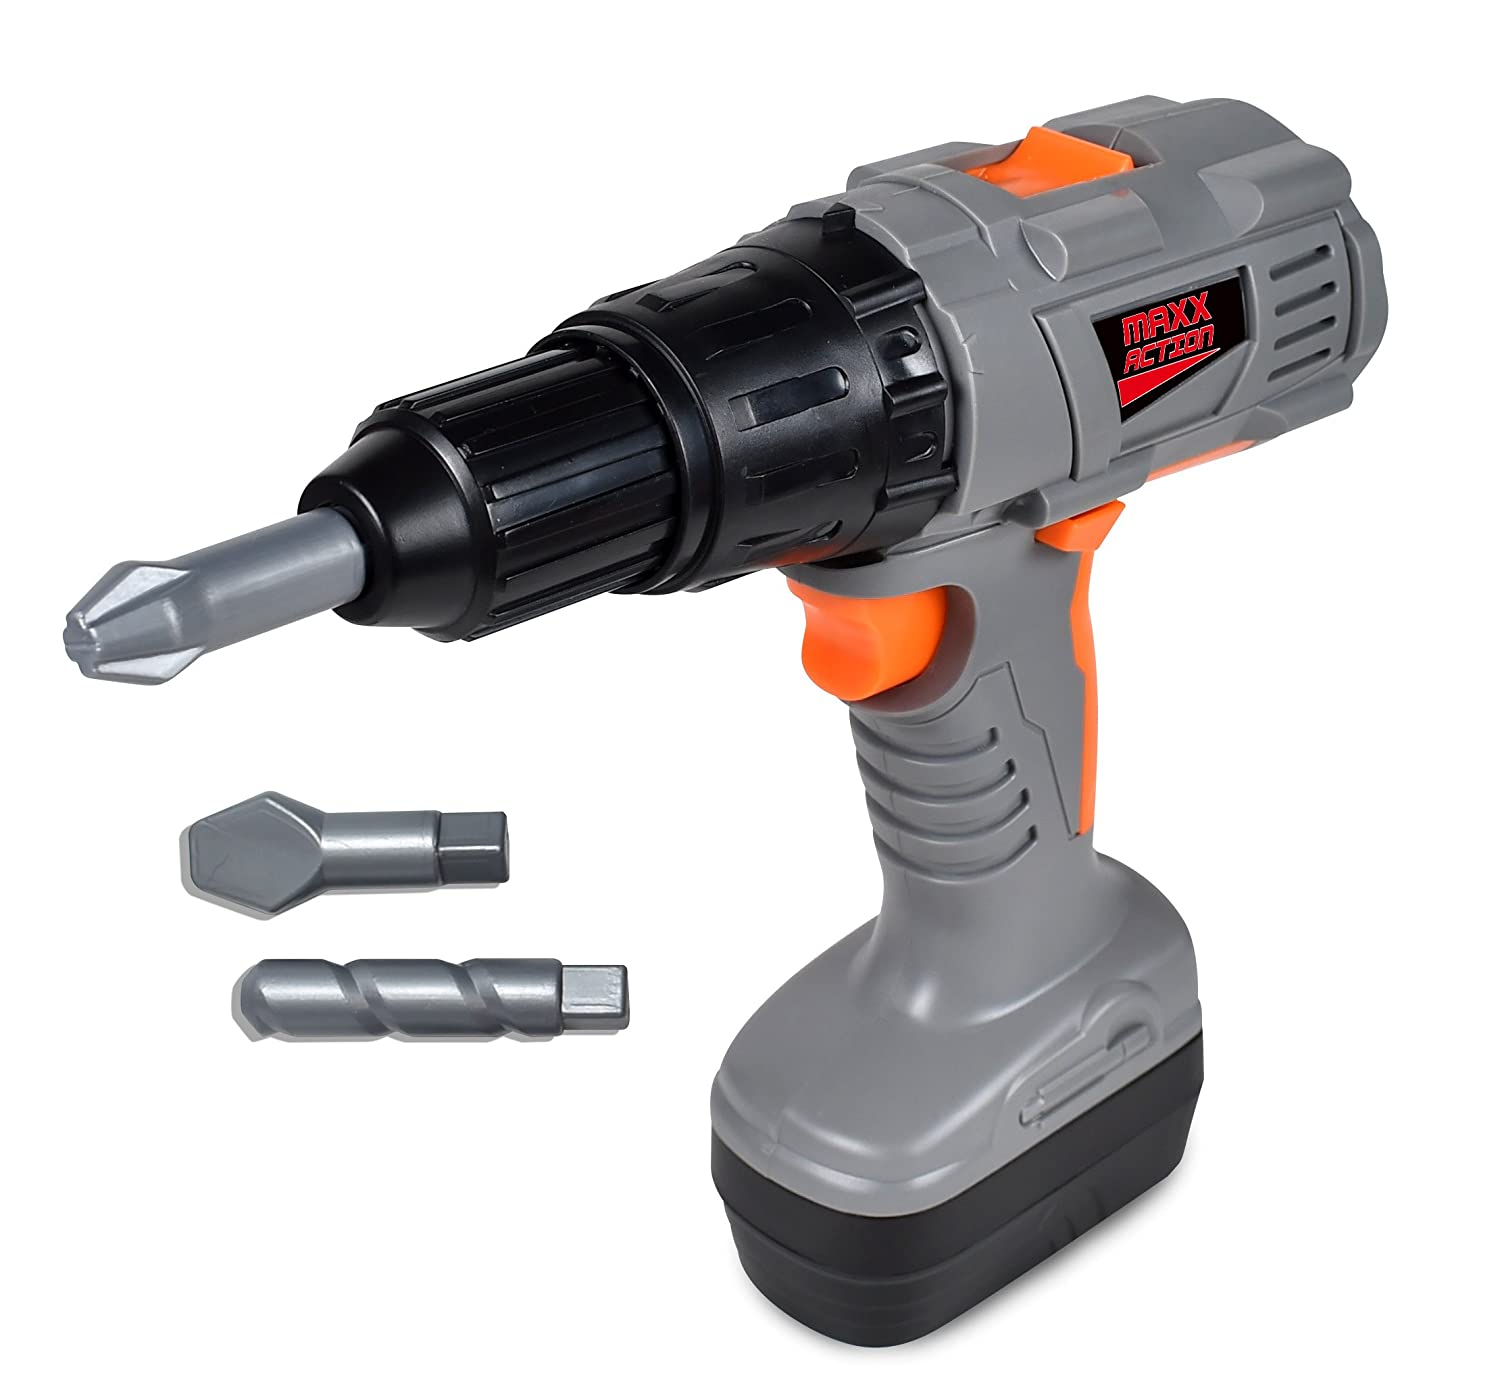 Maxx Action Power Tools Drill & Drill Bits